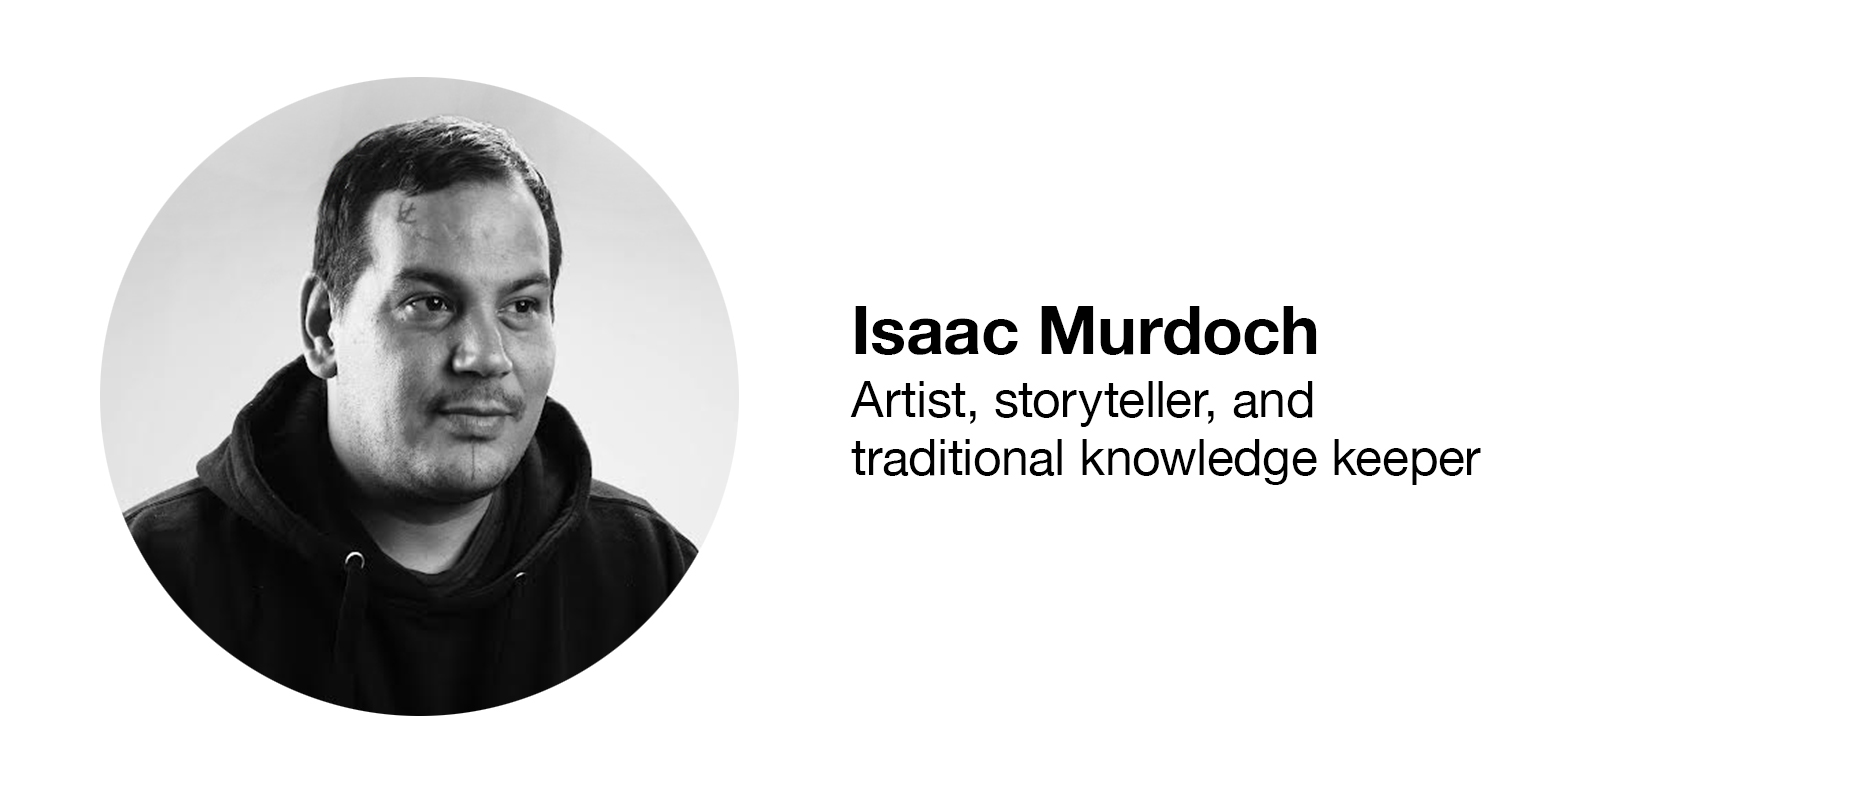 Isaac Murdoch Artist, storyteller, and traditional knowledge keeper